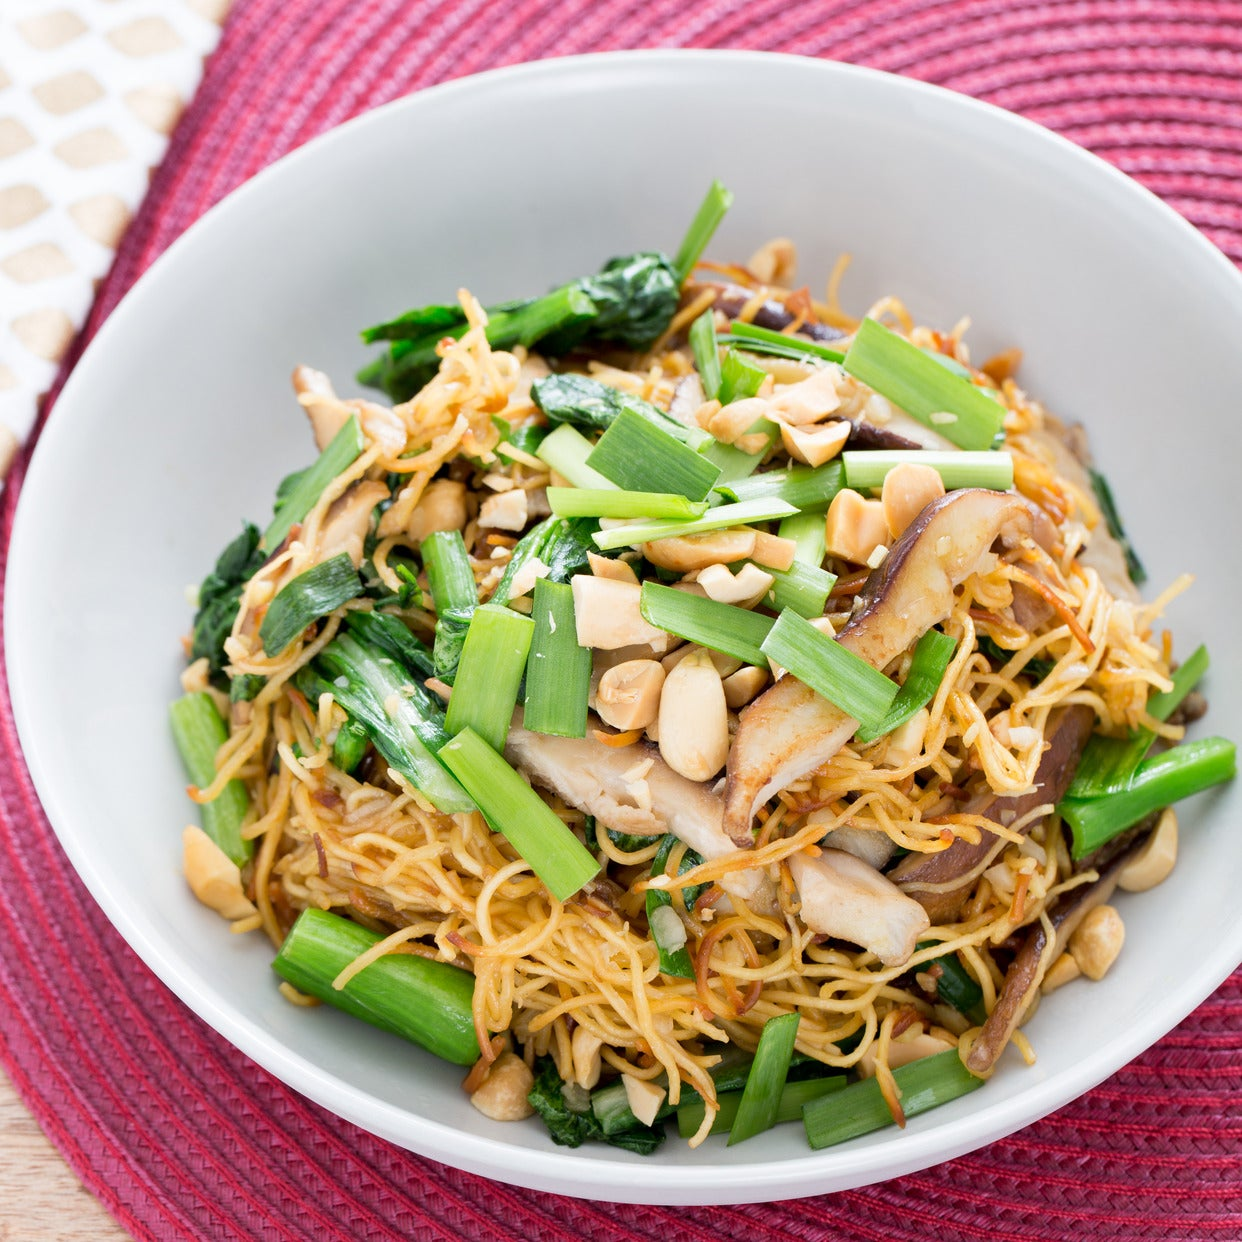 Recipe stir fried chow mein noodles with chinese broccoli chives stir fried chow mein noodles with chinese broccoli chives forumfinder